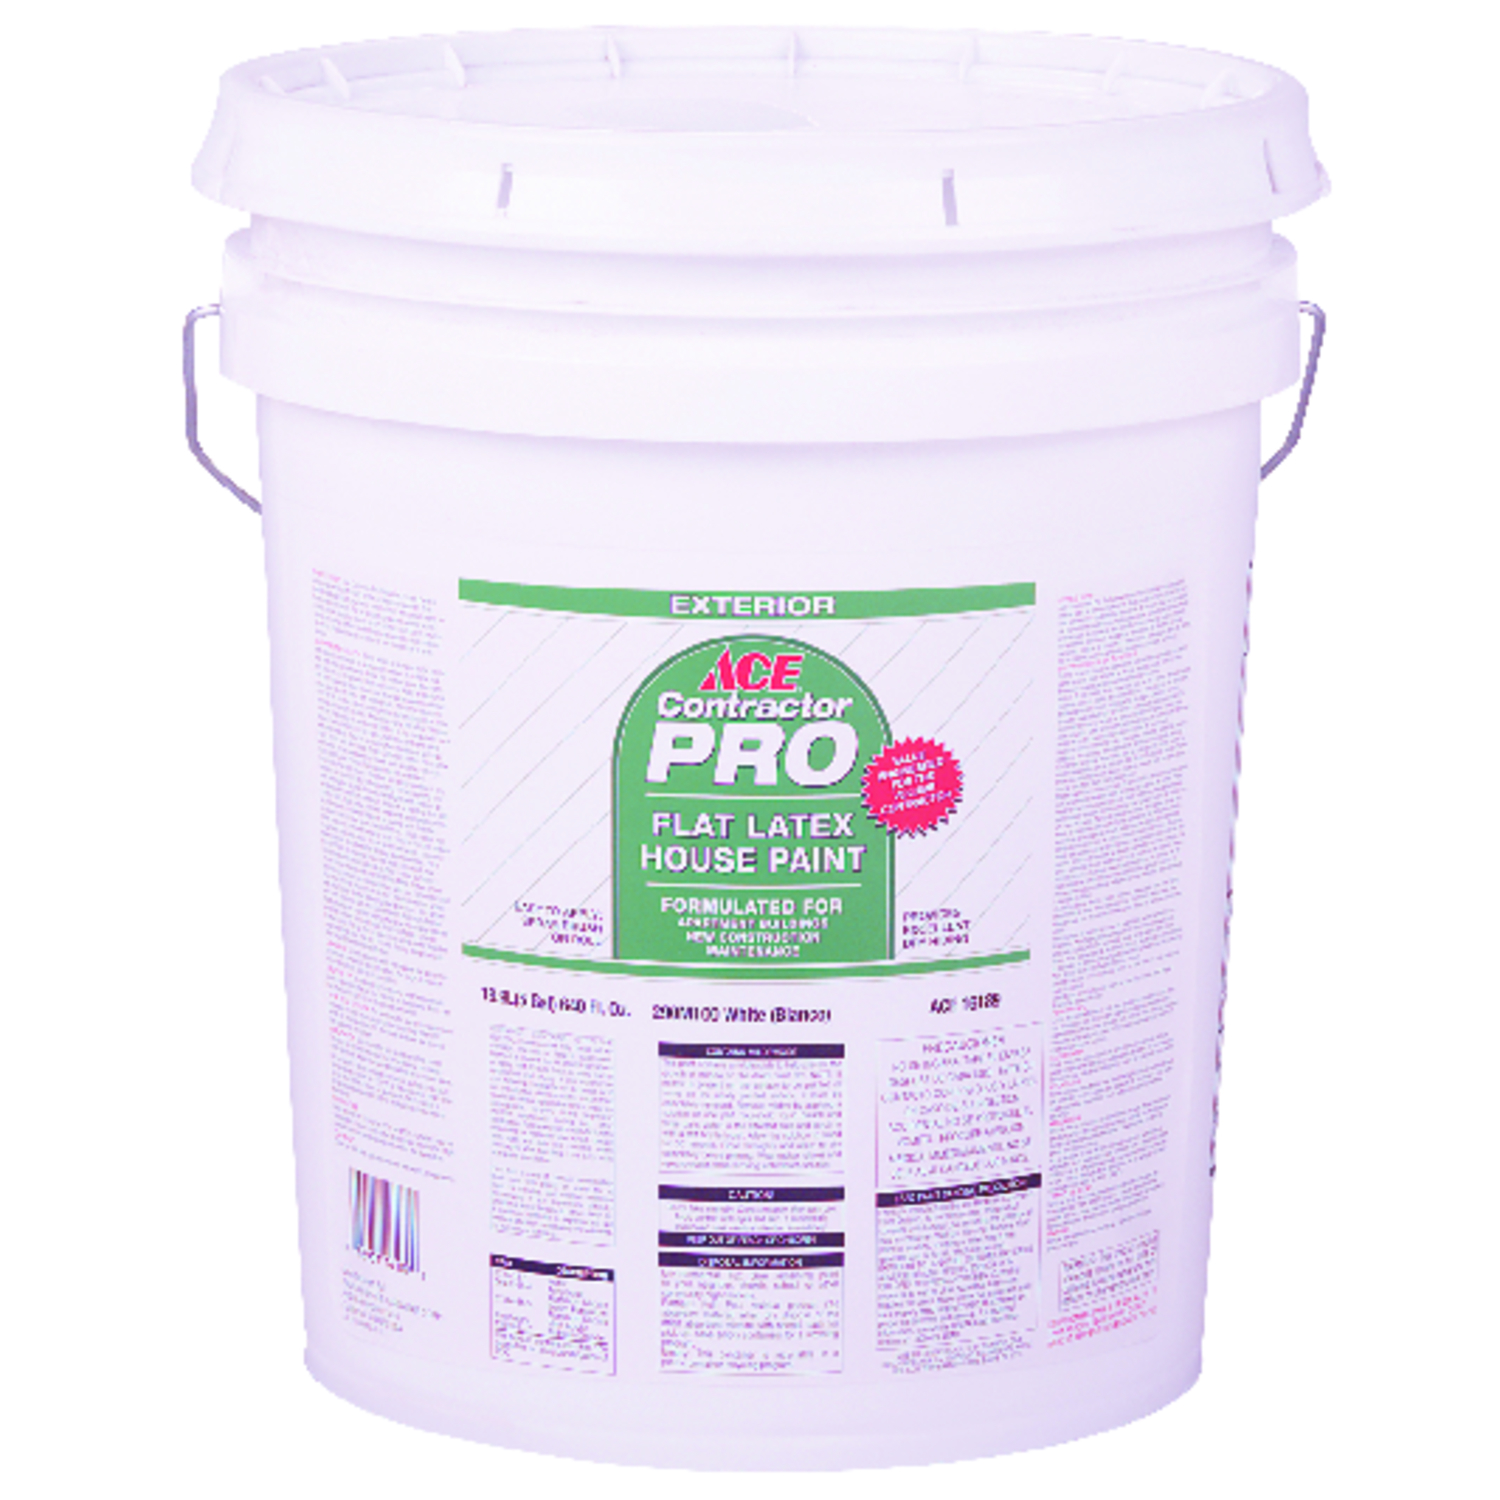 Ace  Contractor Pro  House Paint  5 gal.